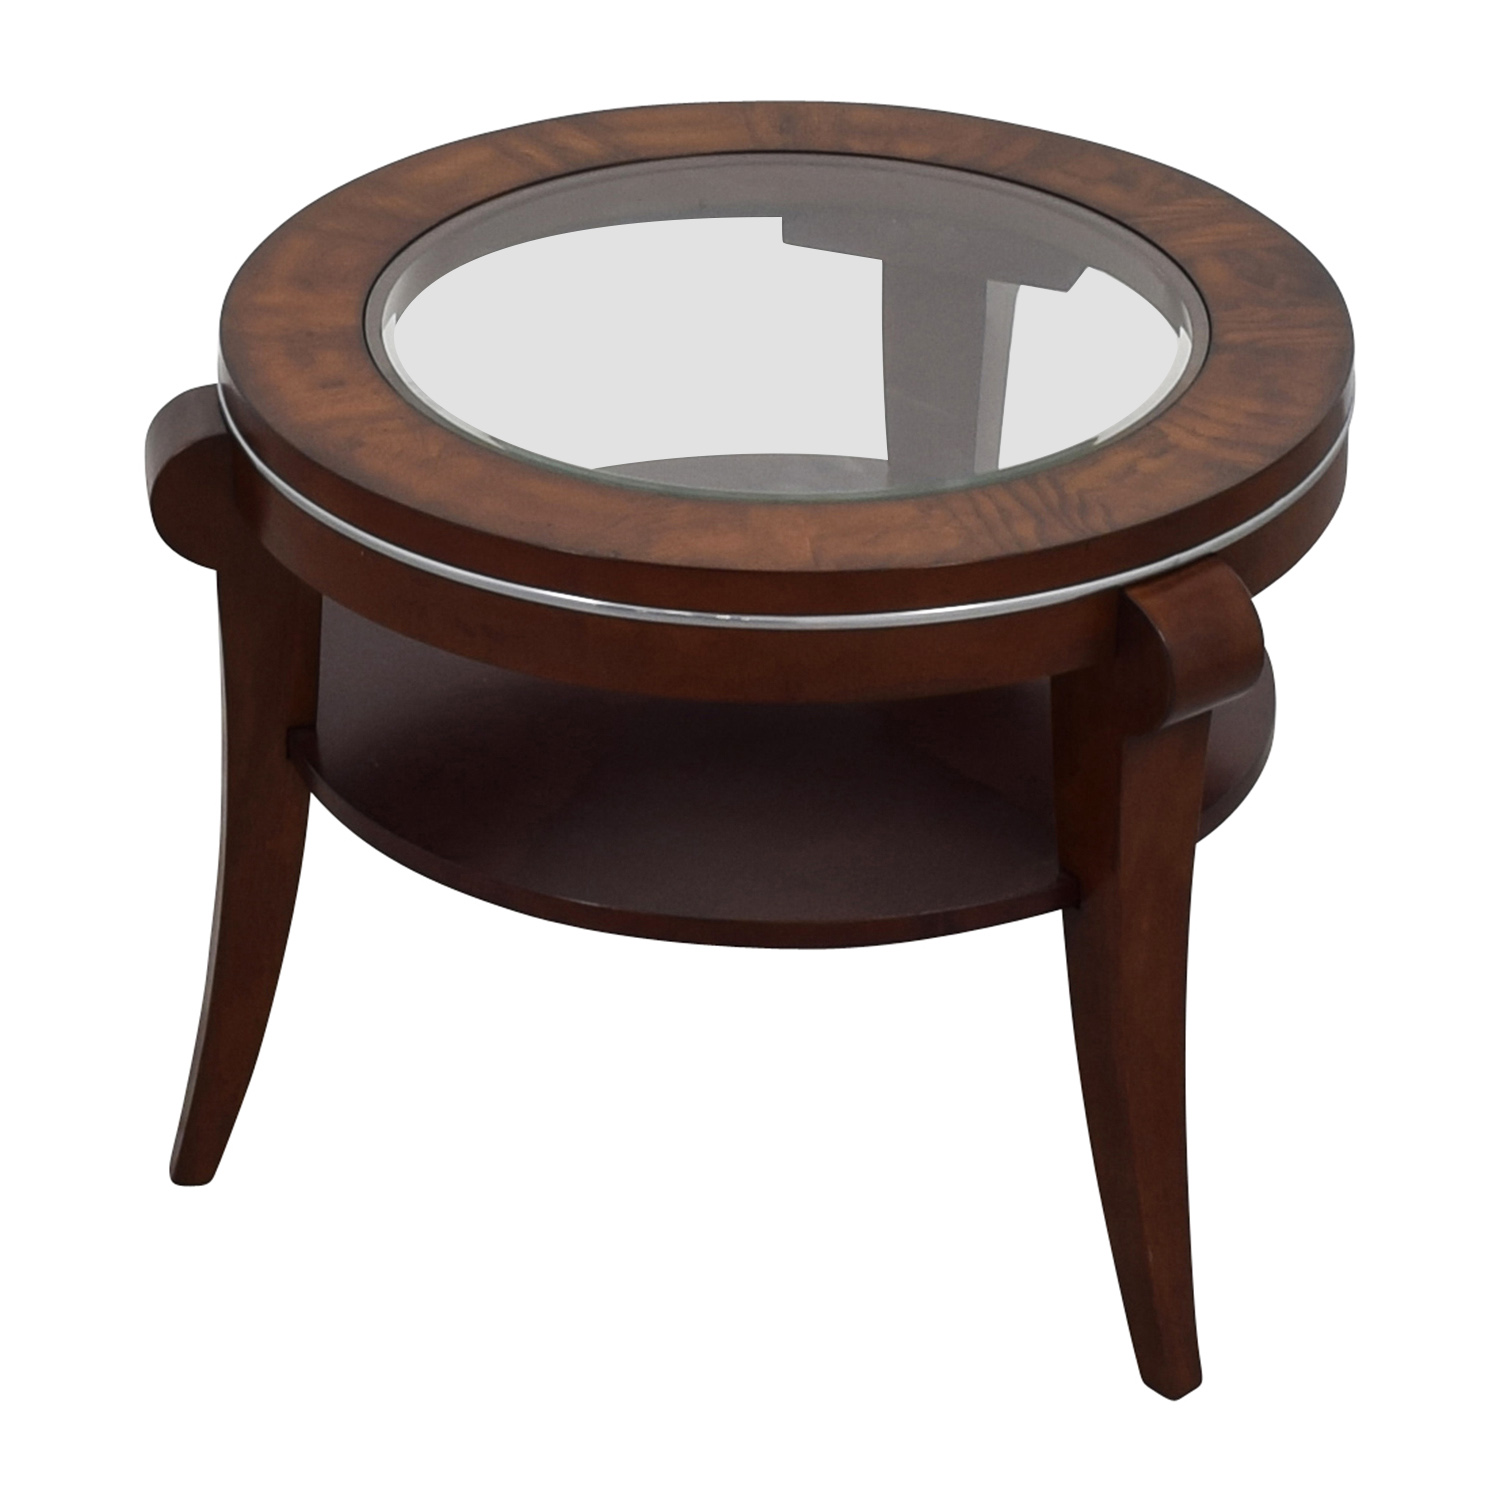 Raymour and Flanigan Raymour & Flanigan Round Glass and Wood Side Table